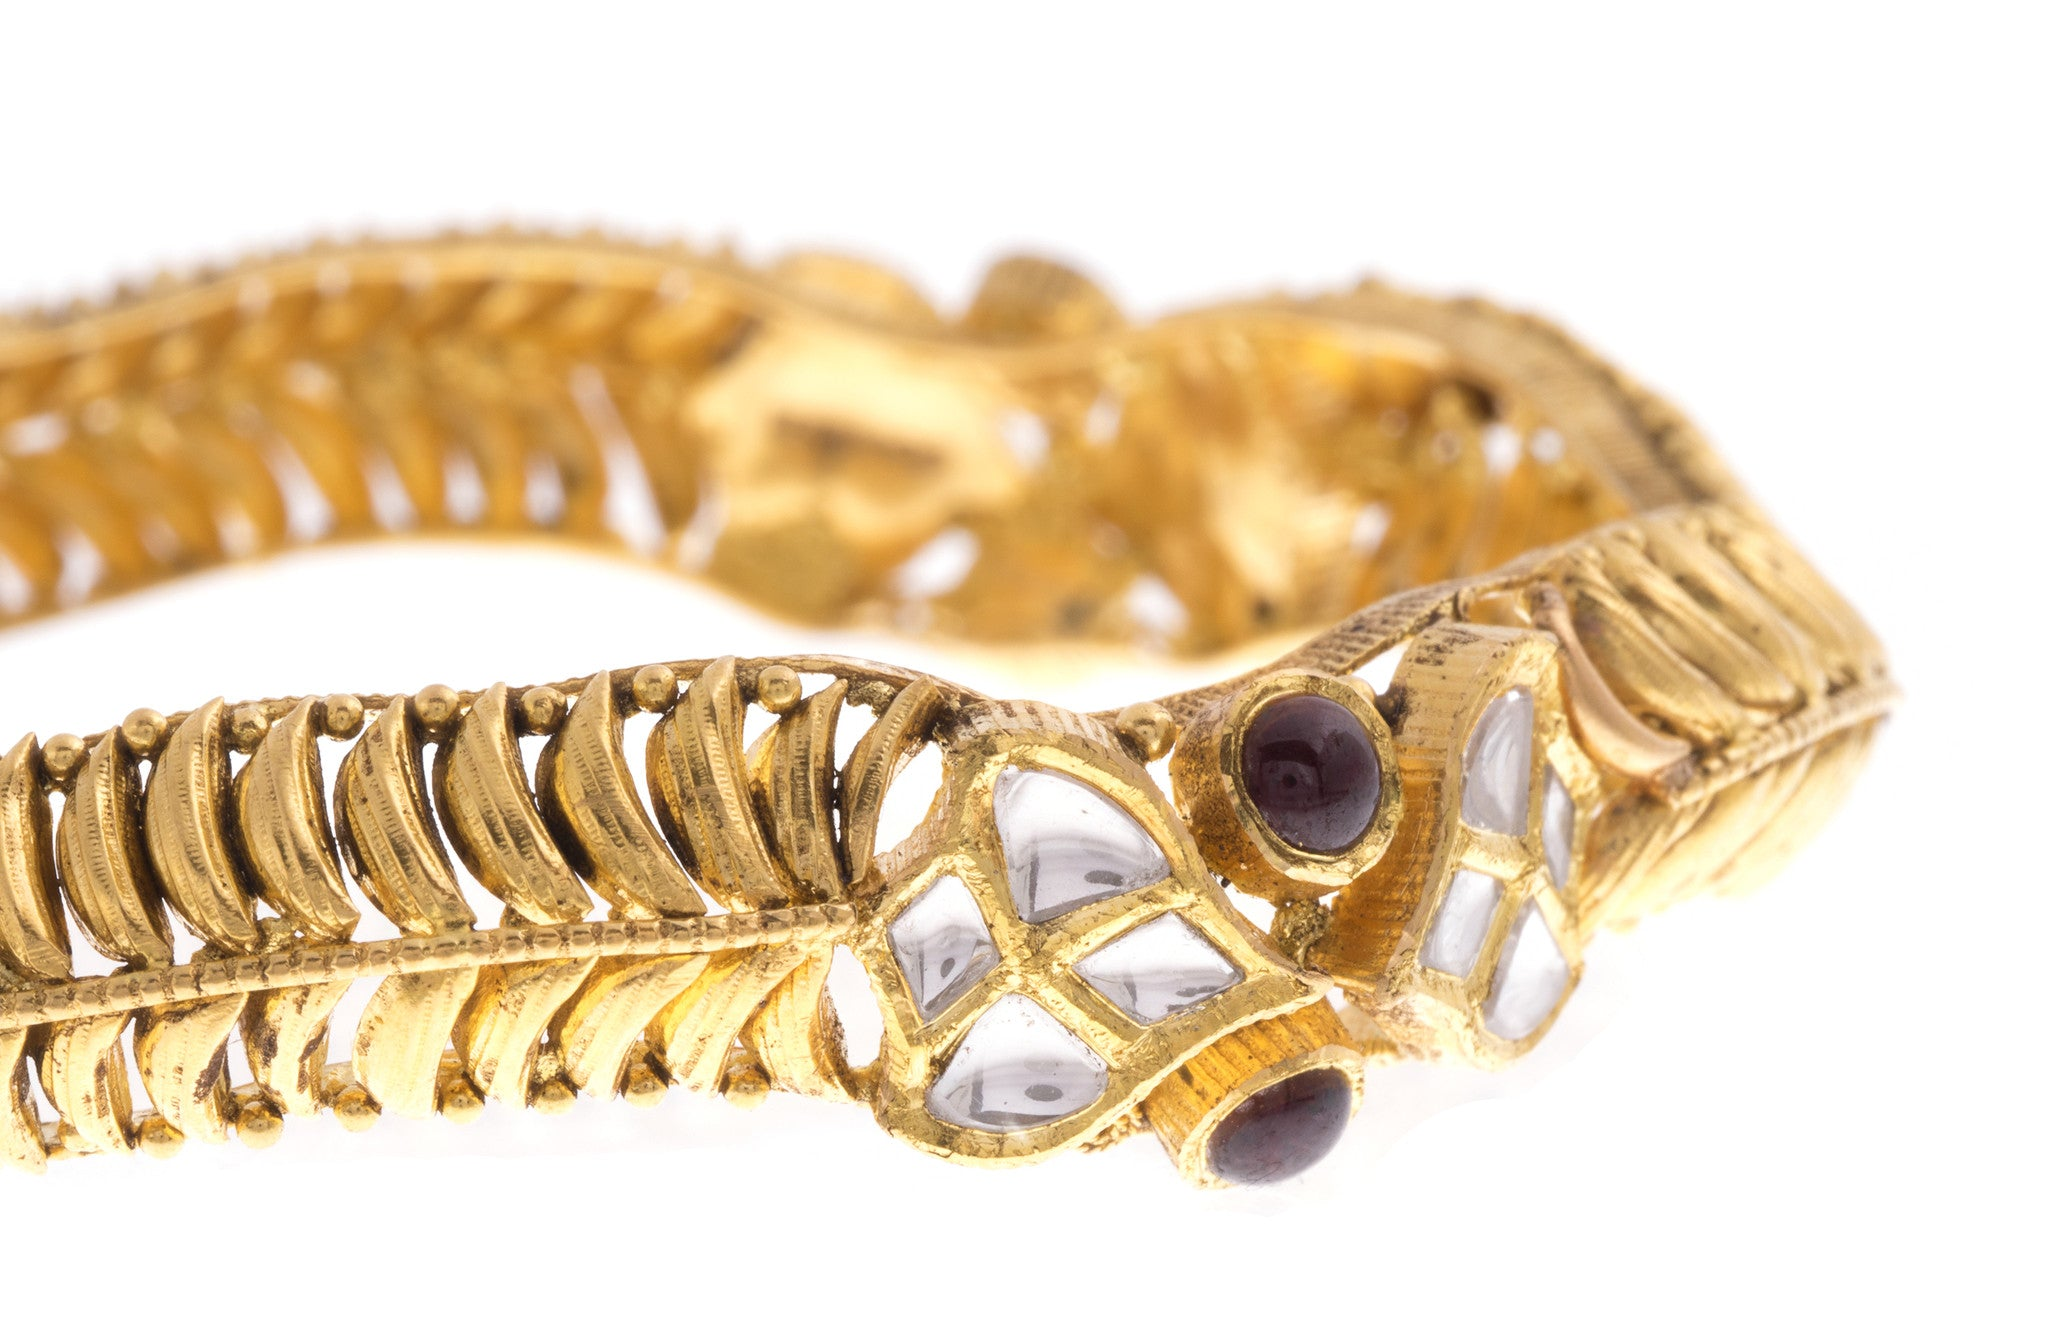 22ct Yellow Gold Antique Look Bangle with Synthetic Stones (G1753), Minar Jewellers - 7